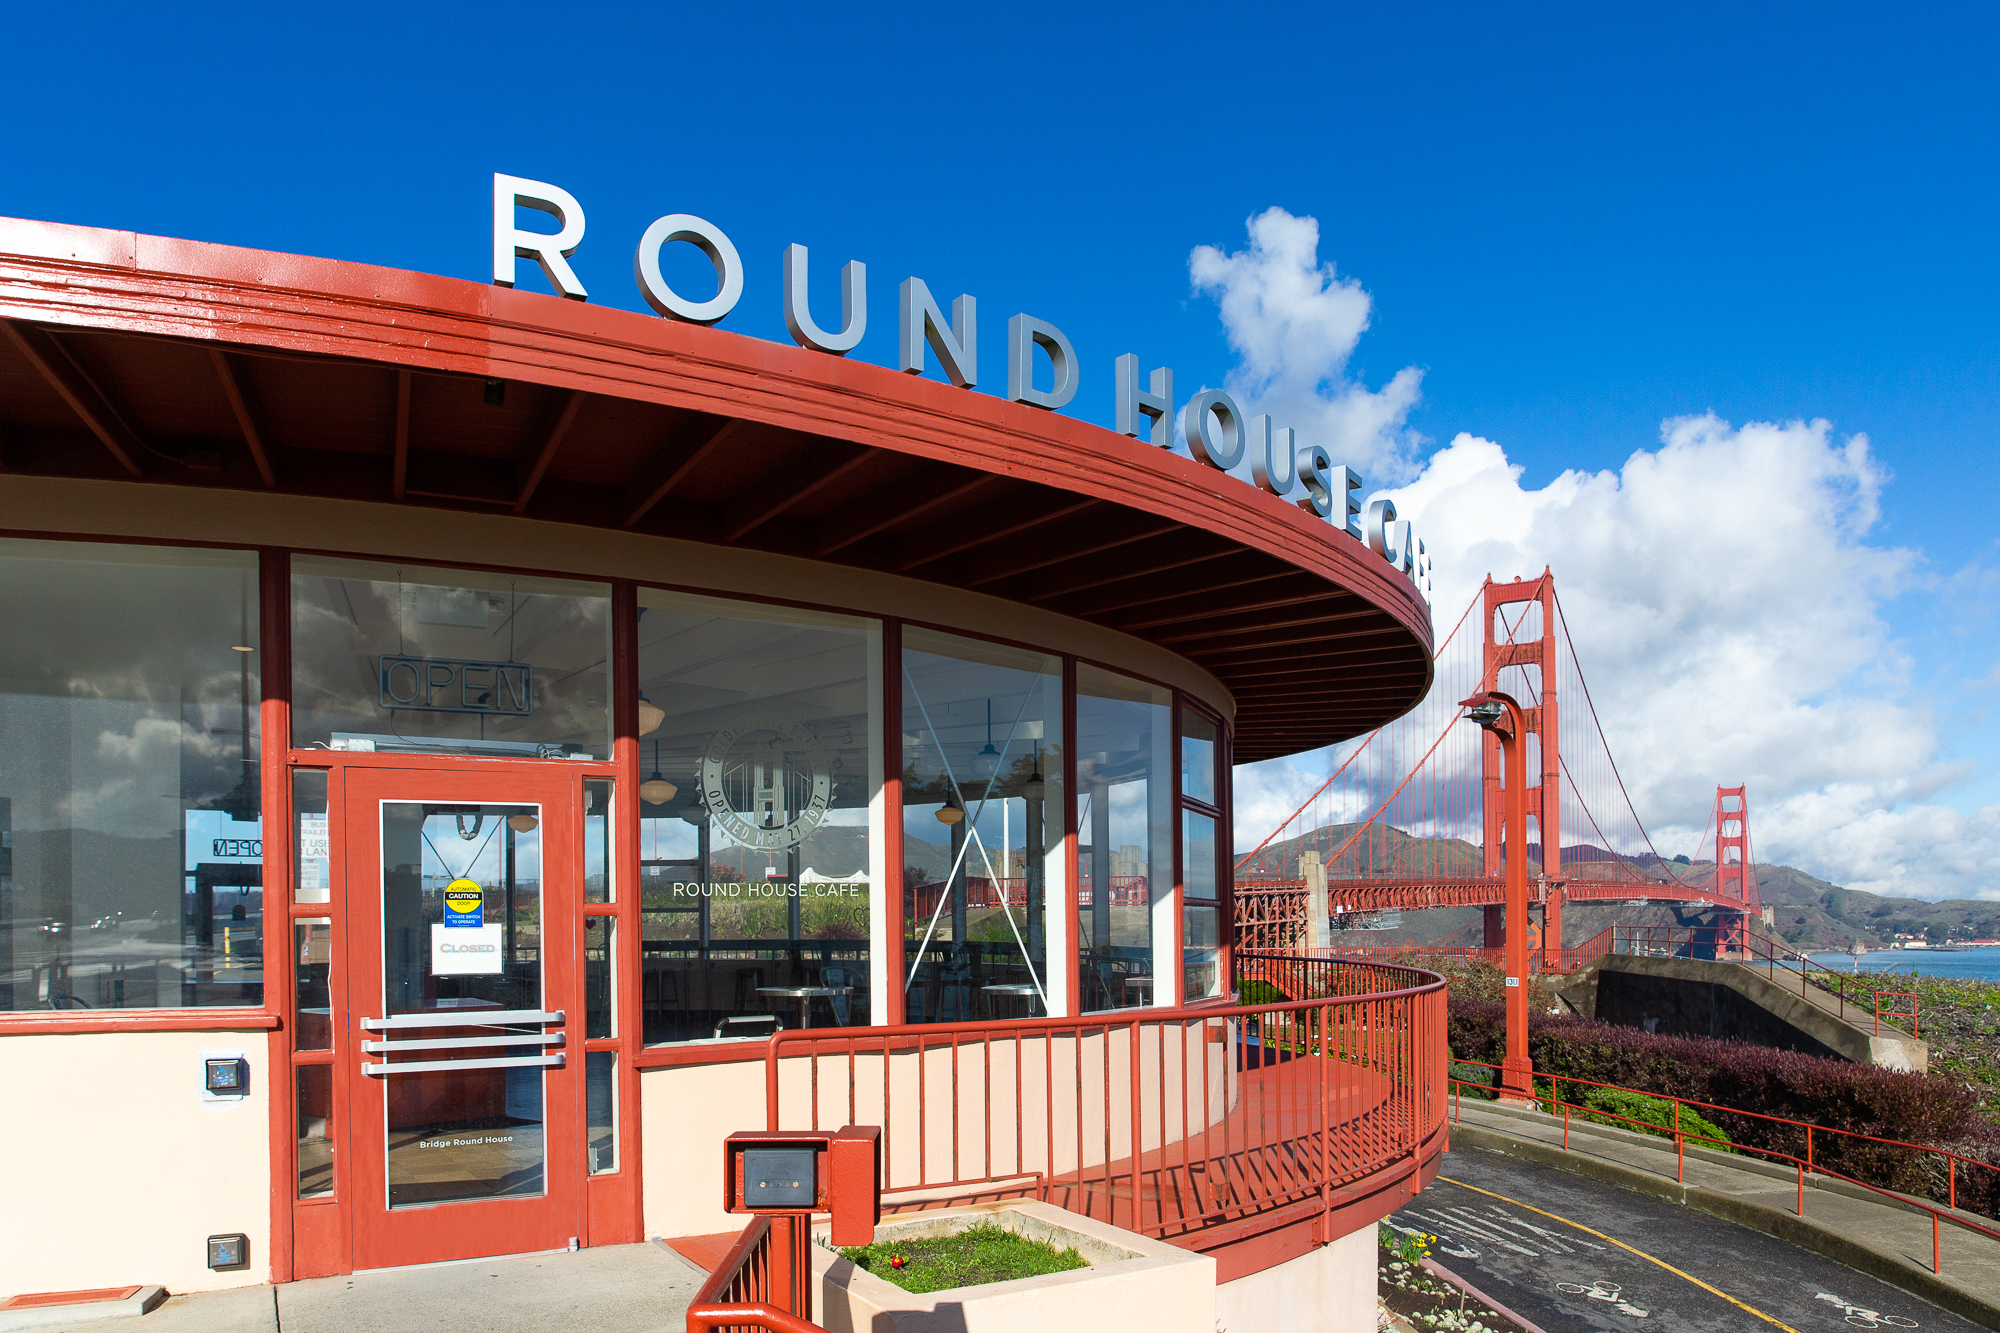 Exterior of Round House Cafe, with Golden Gate Bridge in background